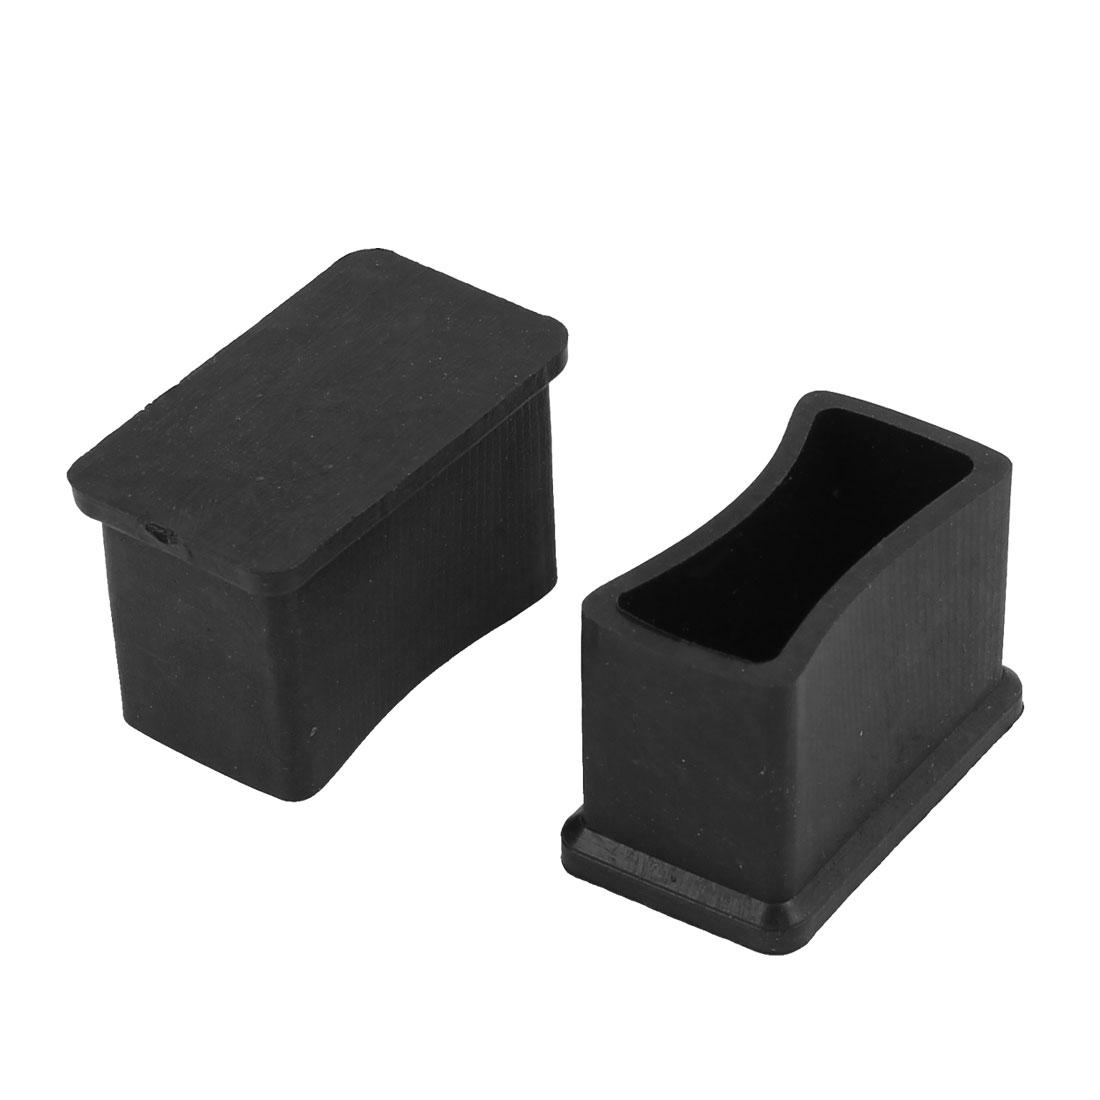 2019 30mm X 15mm Rectangular Rubber Furniture Leg Foot